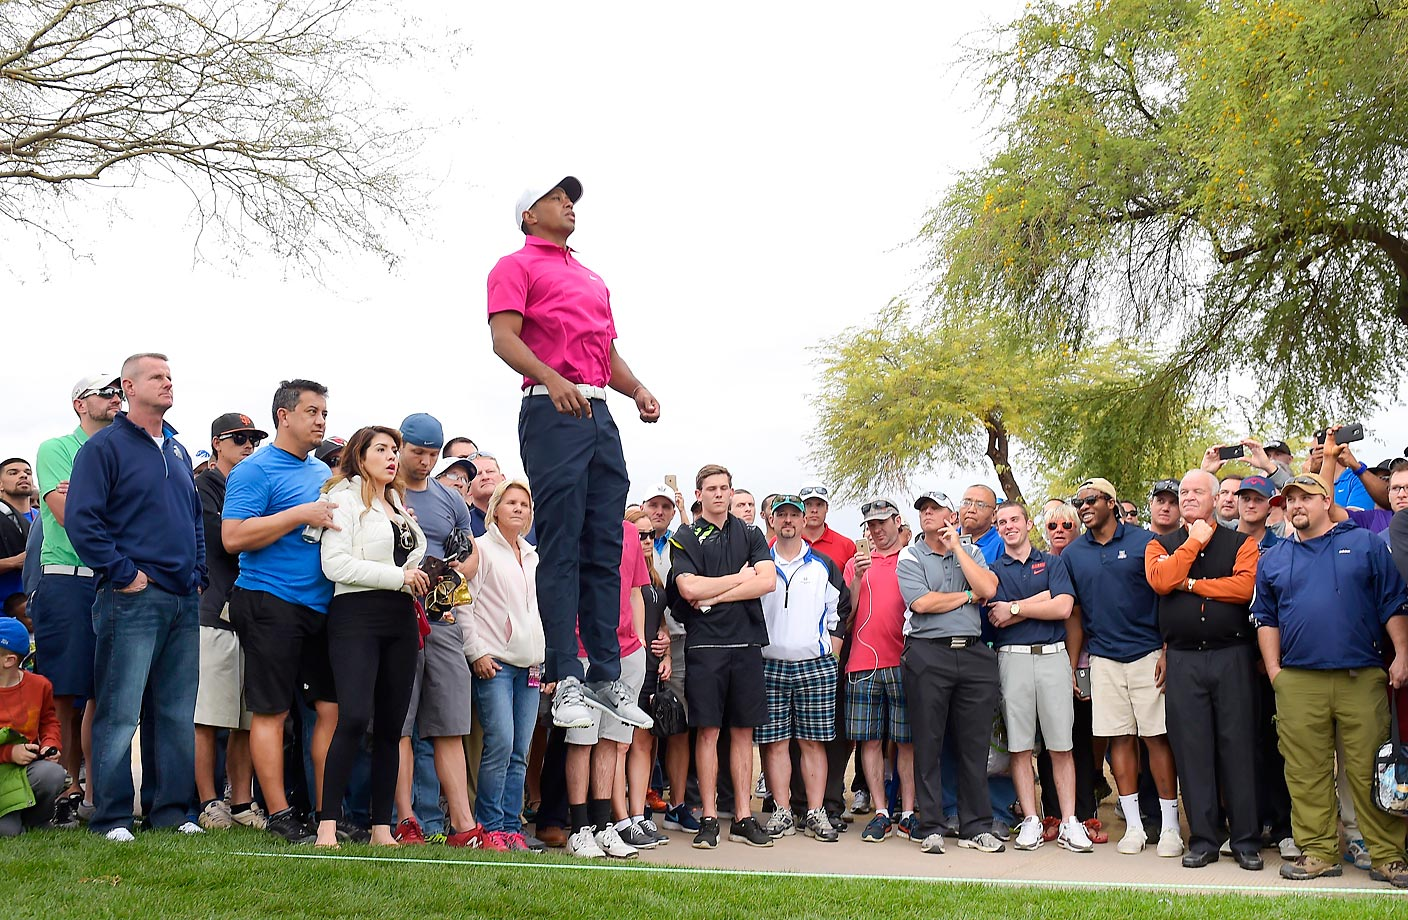 Tiger Woods, seemingly with super powers, is really just leaping up to see the eighth green during the first round of the Waste Management Phoenix Open.